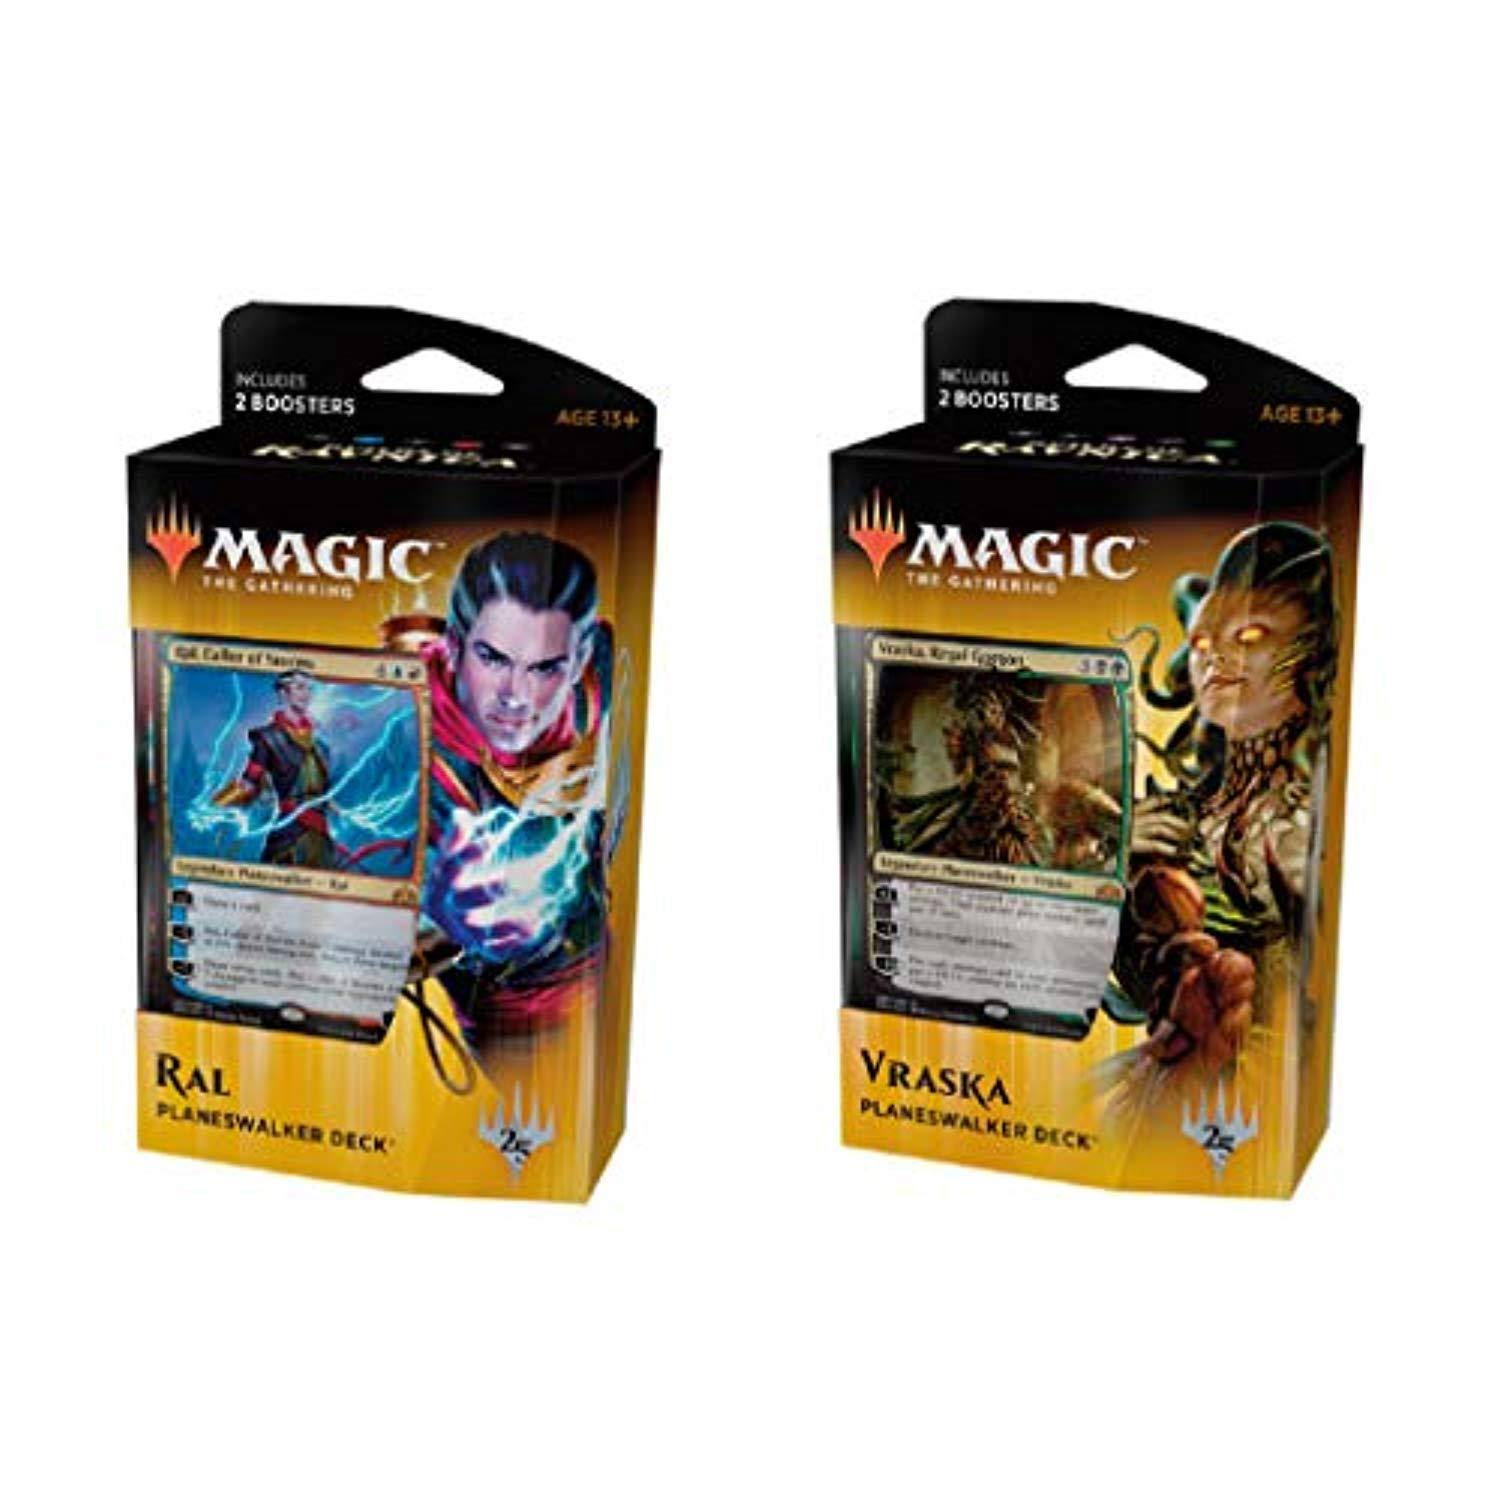 Magic The Gathering Planeswalker Deck: Guilds of Ravnica